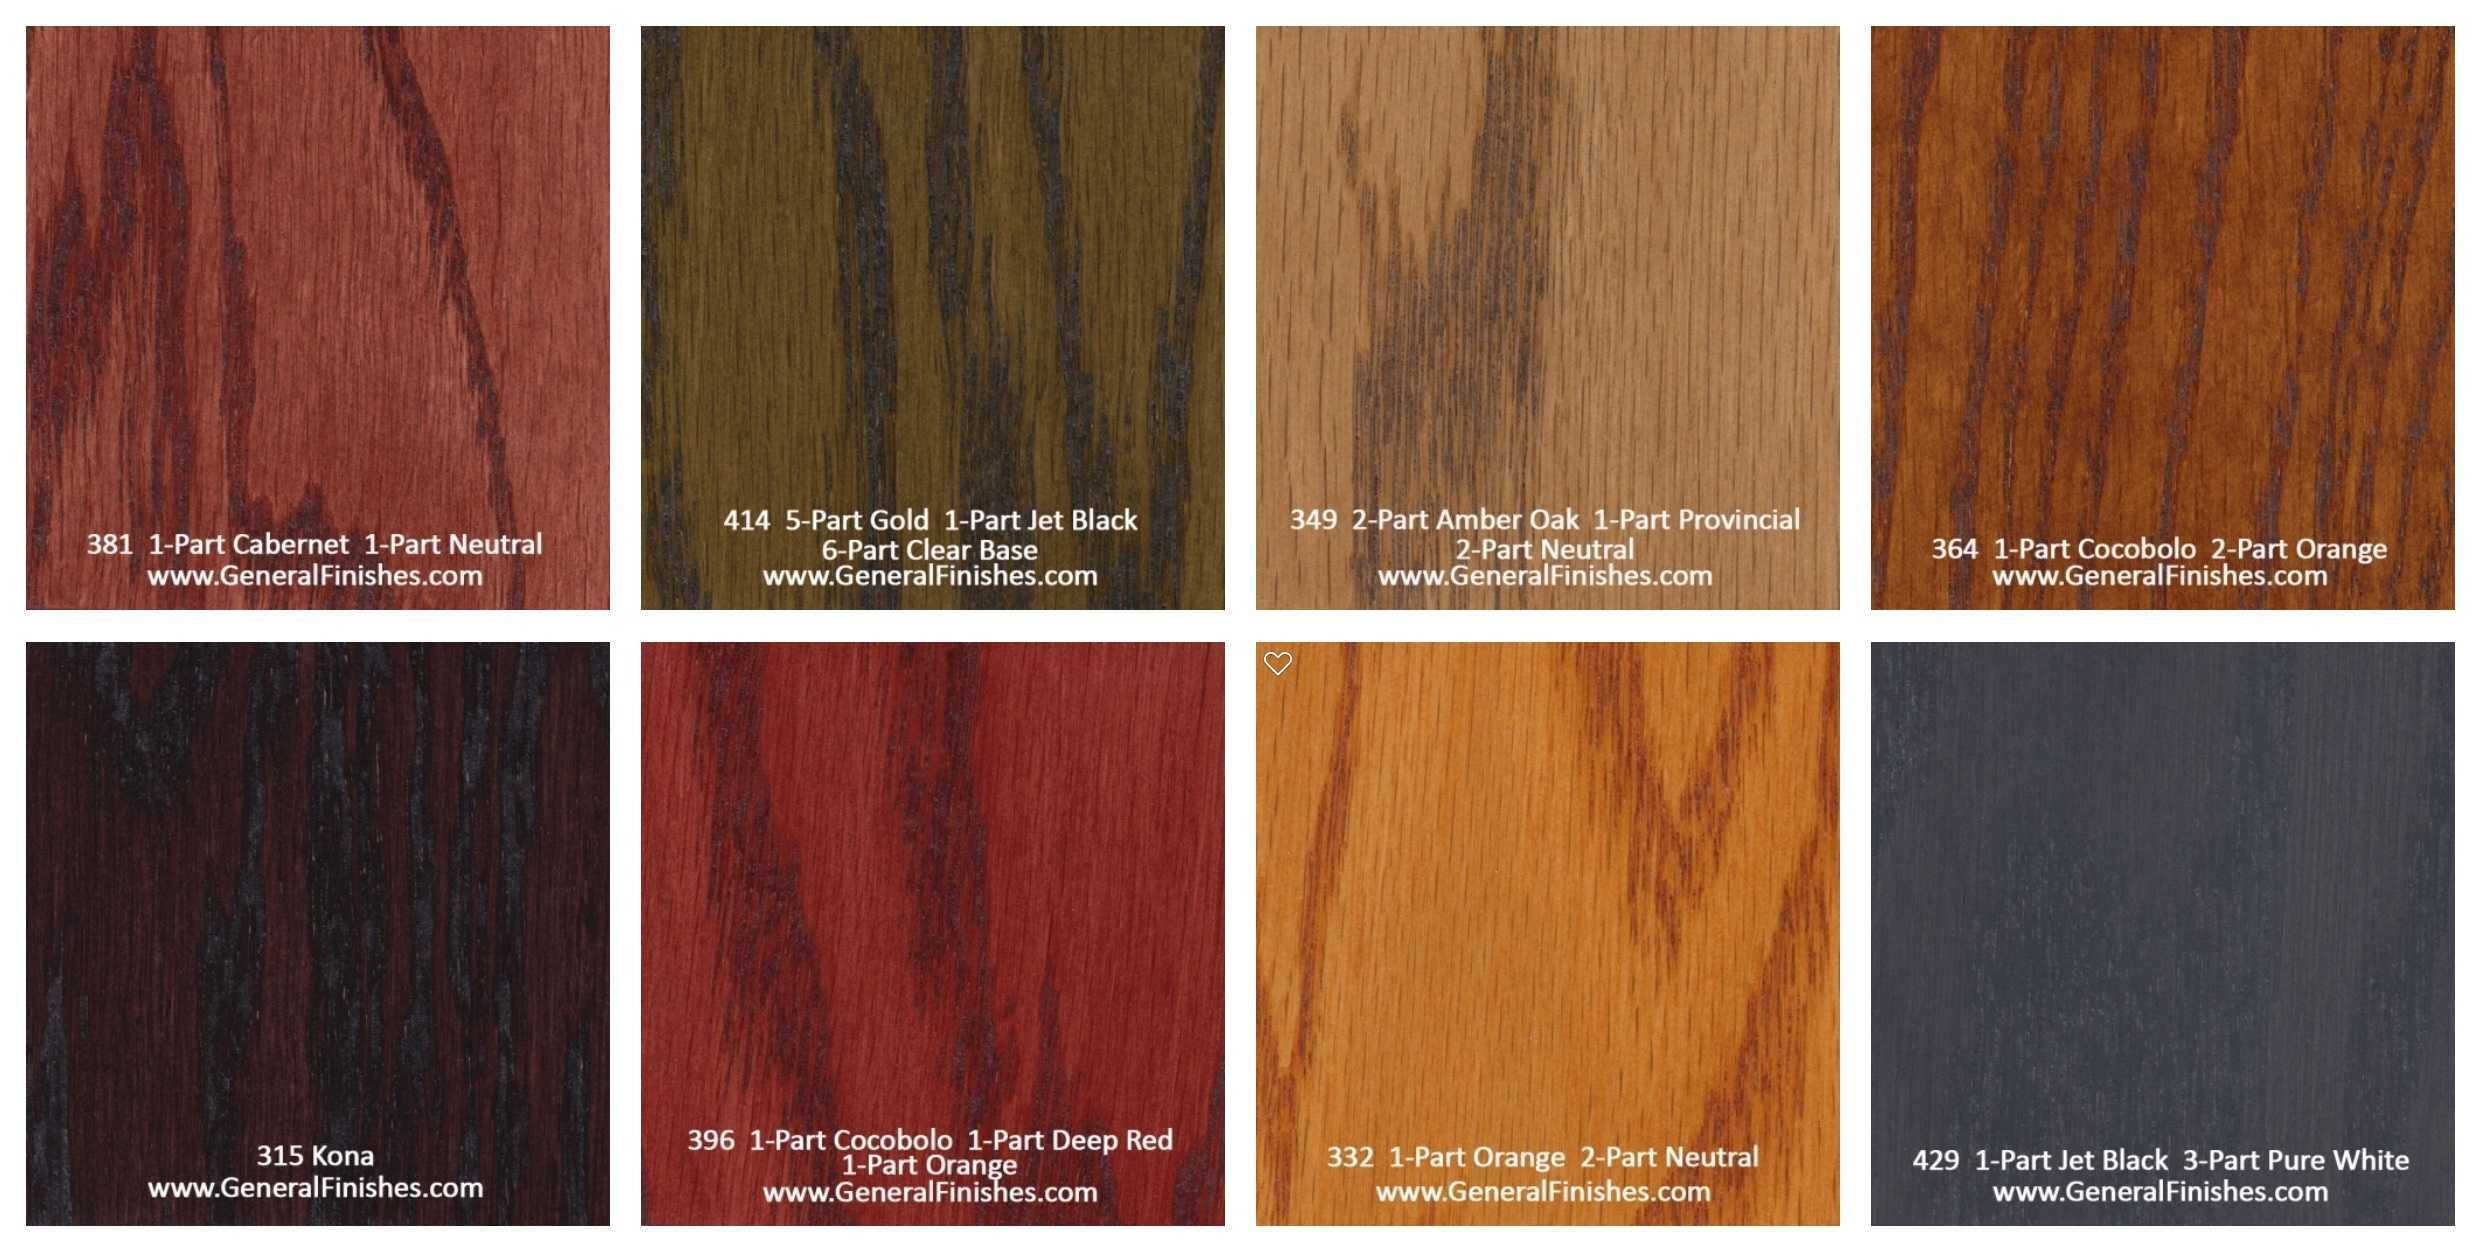 General finishes pro floor stain color swatch chart for general finishes pro floor stain color swatch chart for hardwood flooring nvjuhfo Image collections